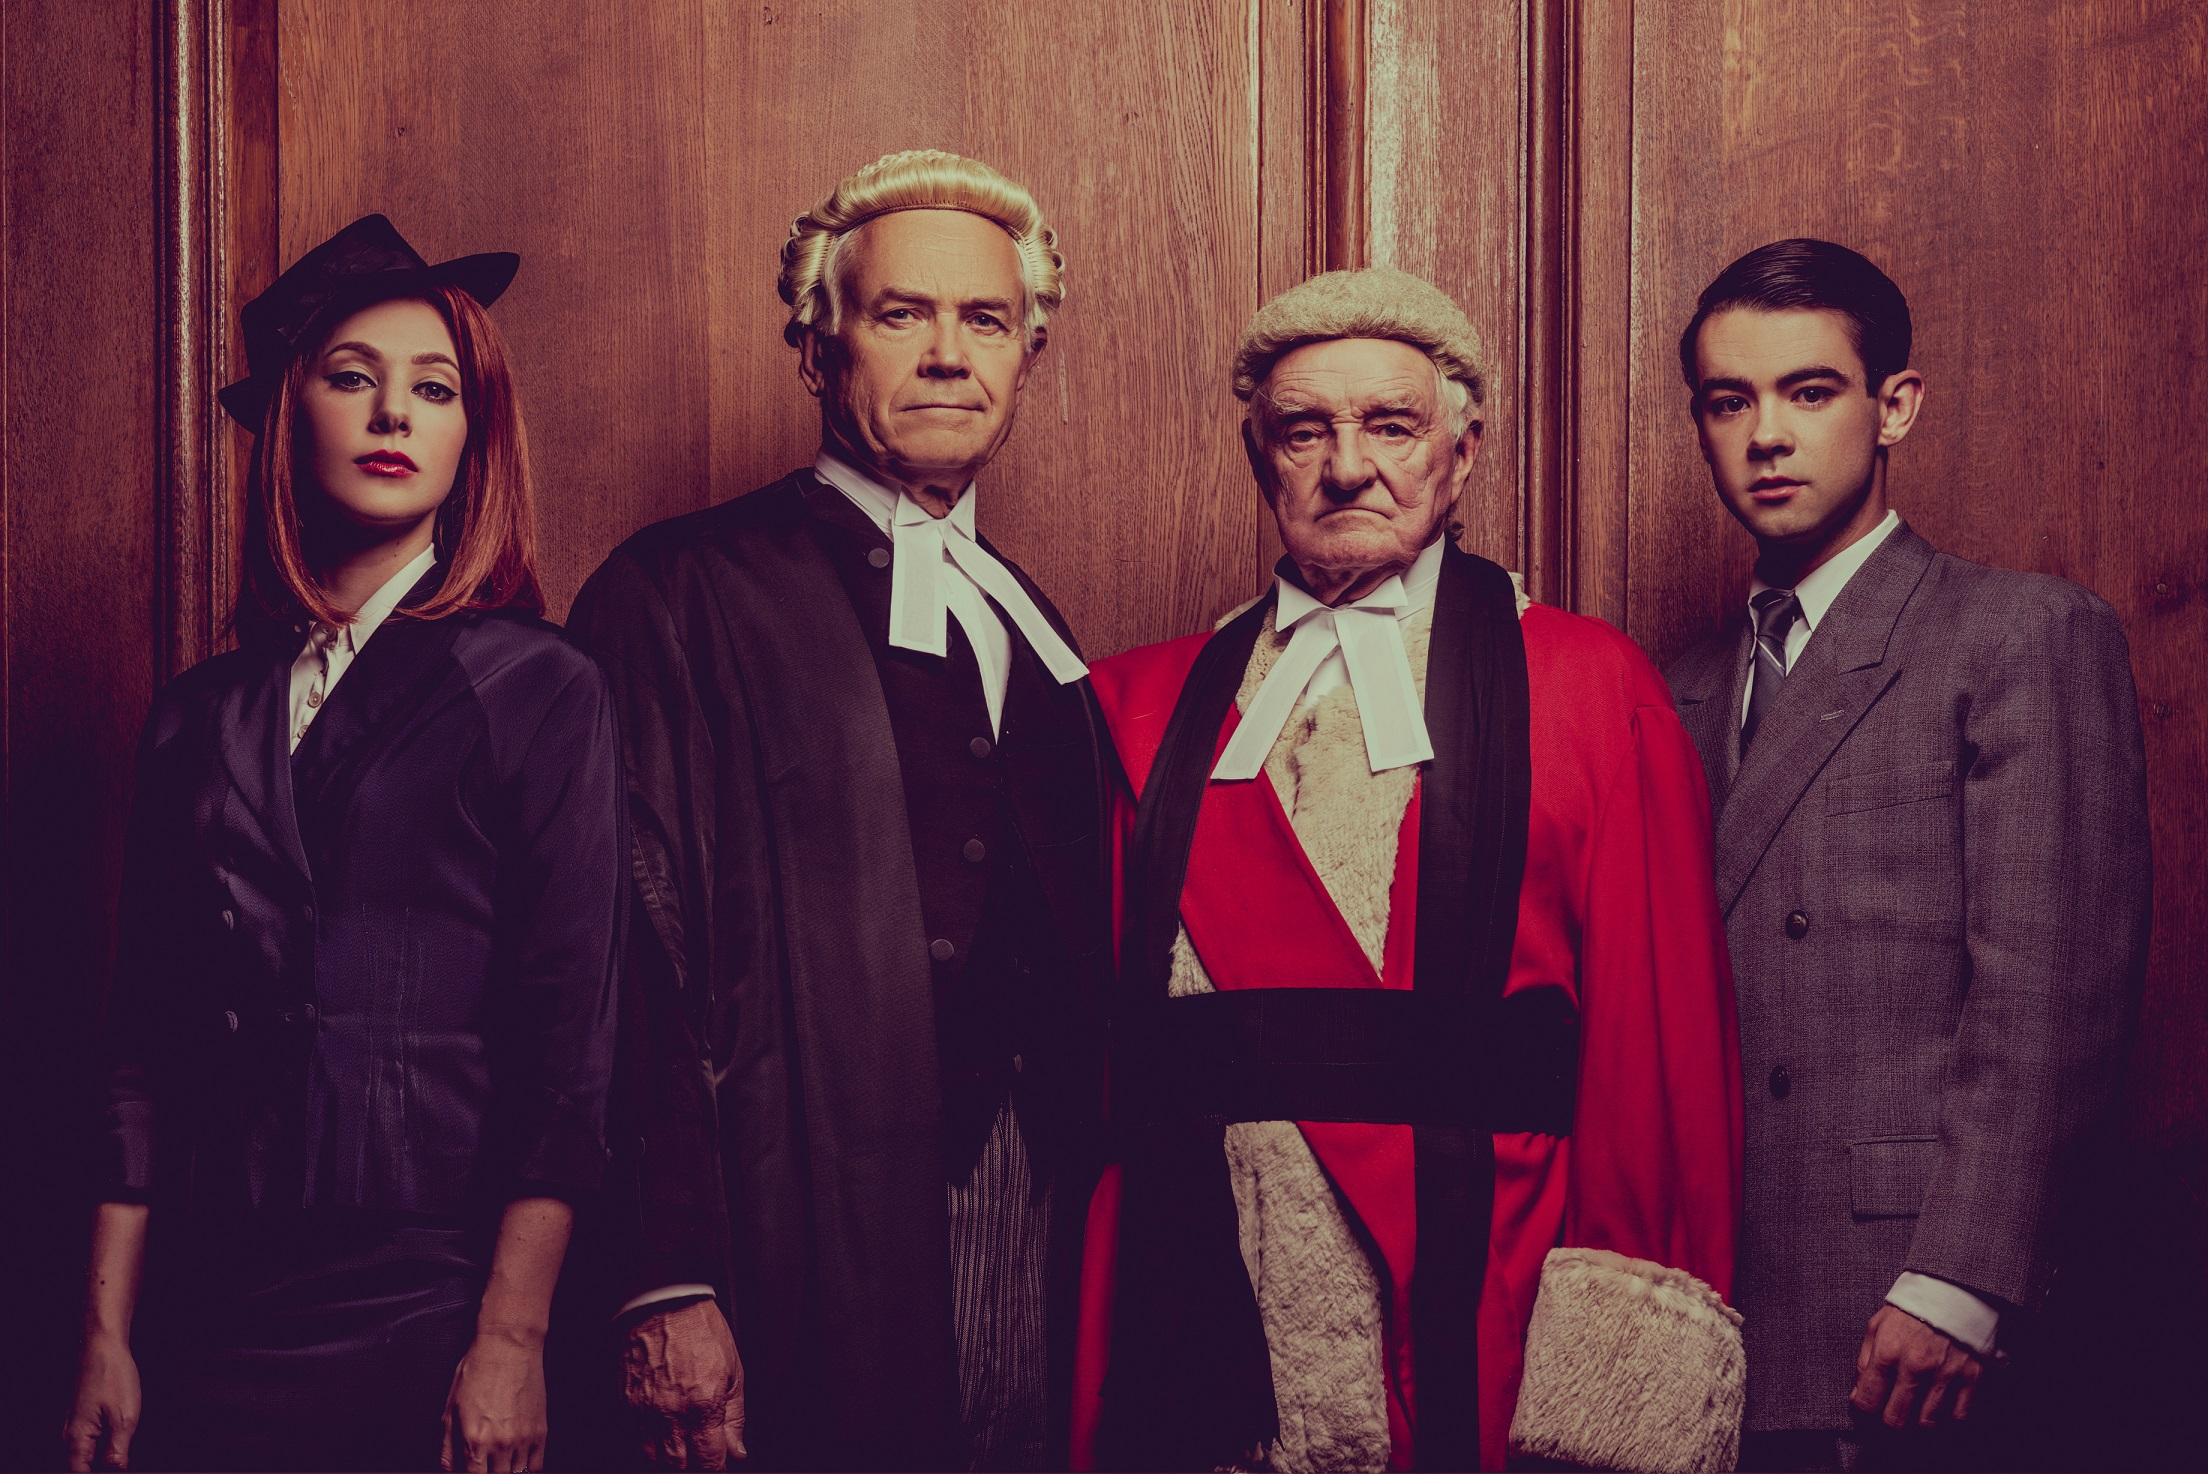 Catherine Steadman, David Yelland, Patrick Godfrey and Jack McMullen in Witness for the Prosecution photo by Idil Sukan.jpg